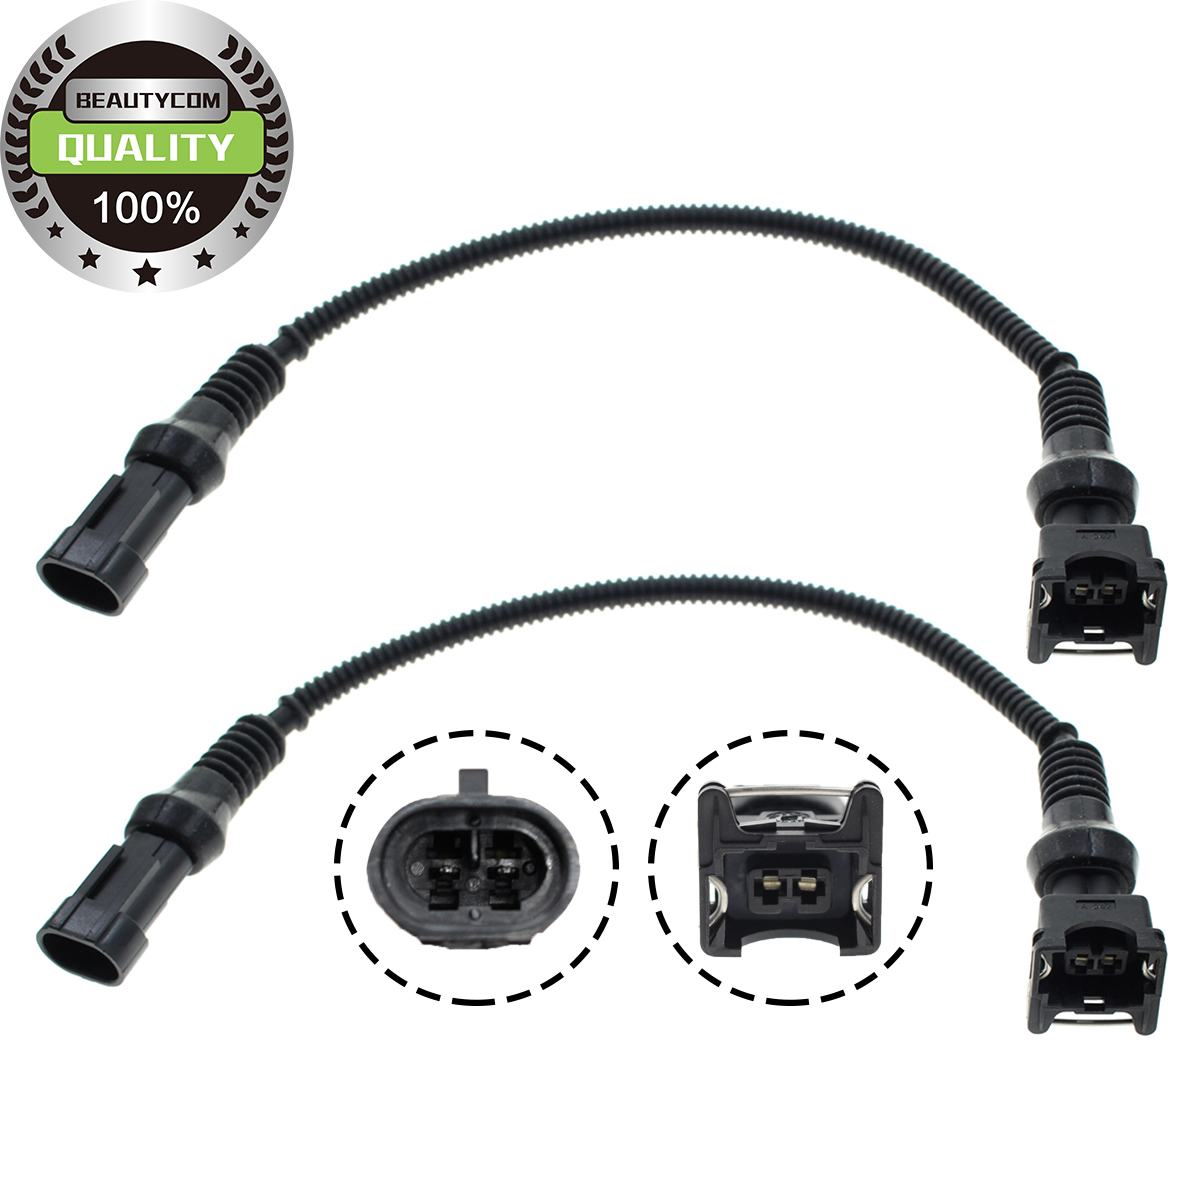 2x Fuel Injector Connectors For Polaris Ranger Rzr